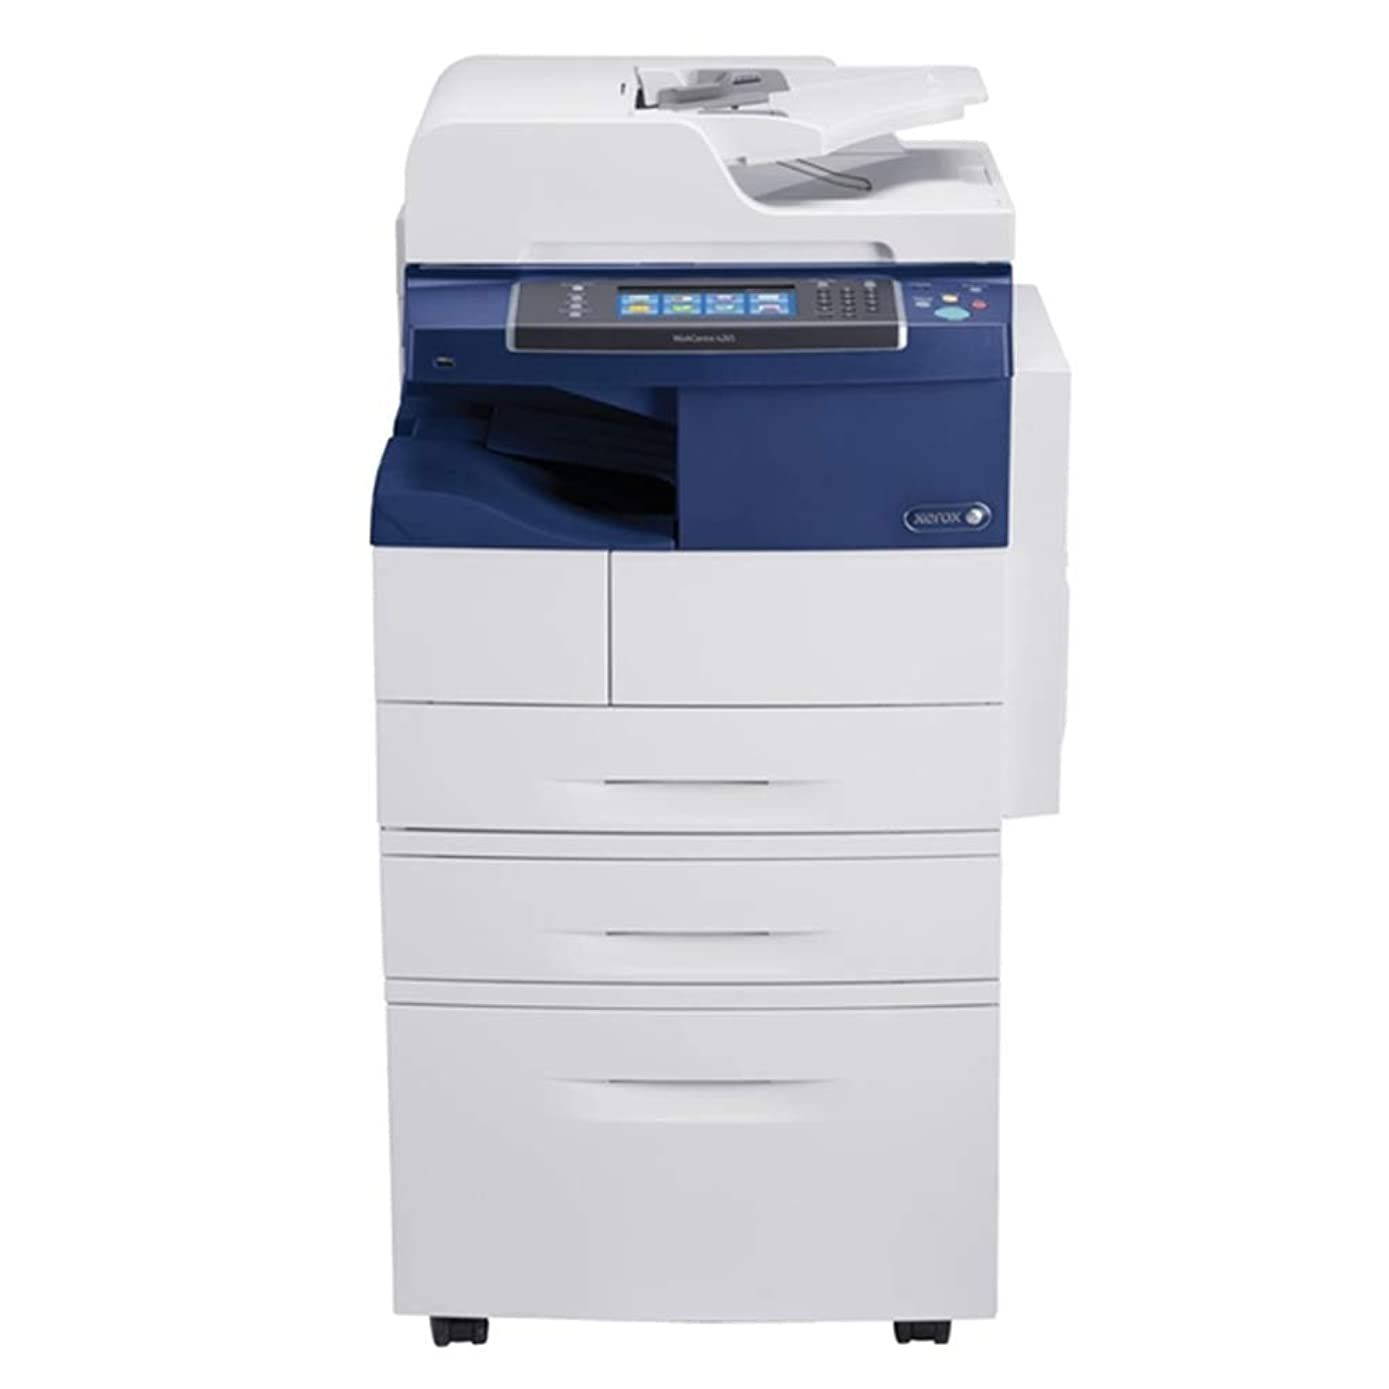 Used Xerox WorkCentre 4265XF Mono Laser MFP Printer Copier Scanner with Finisher 55 PPM